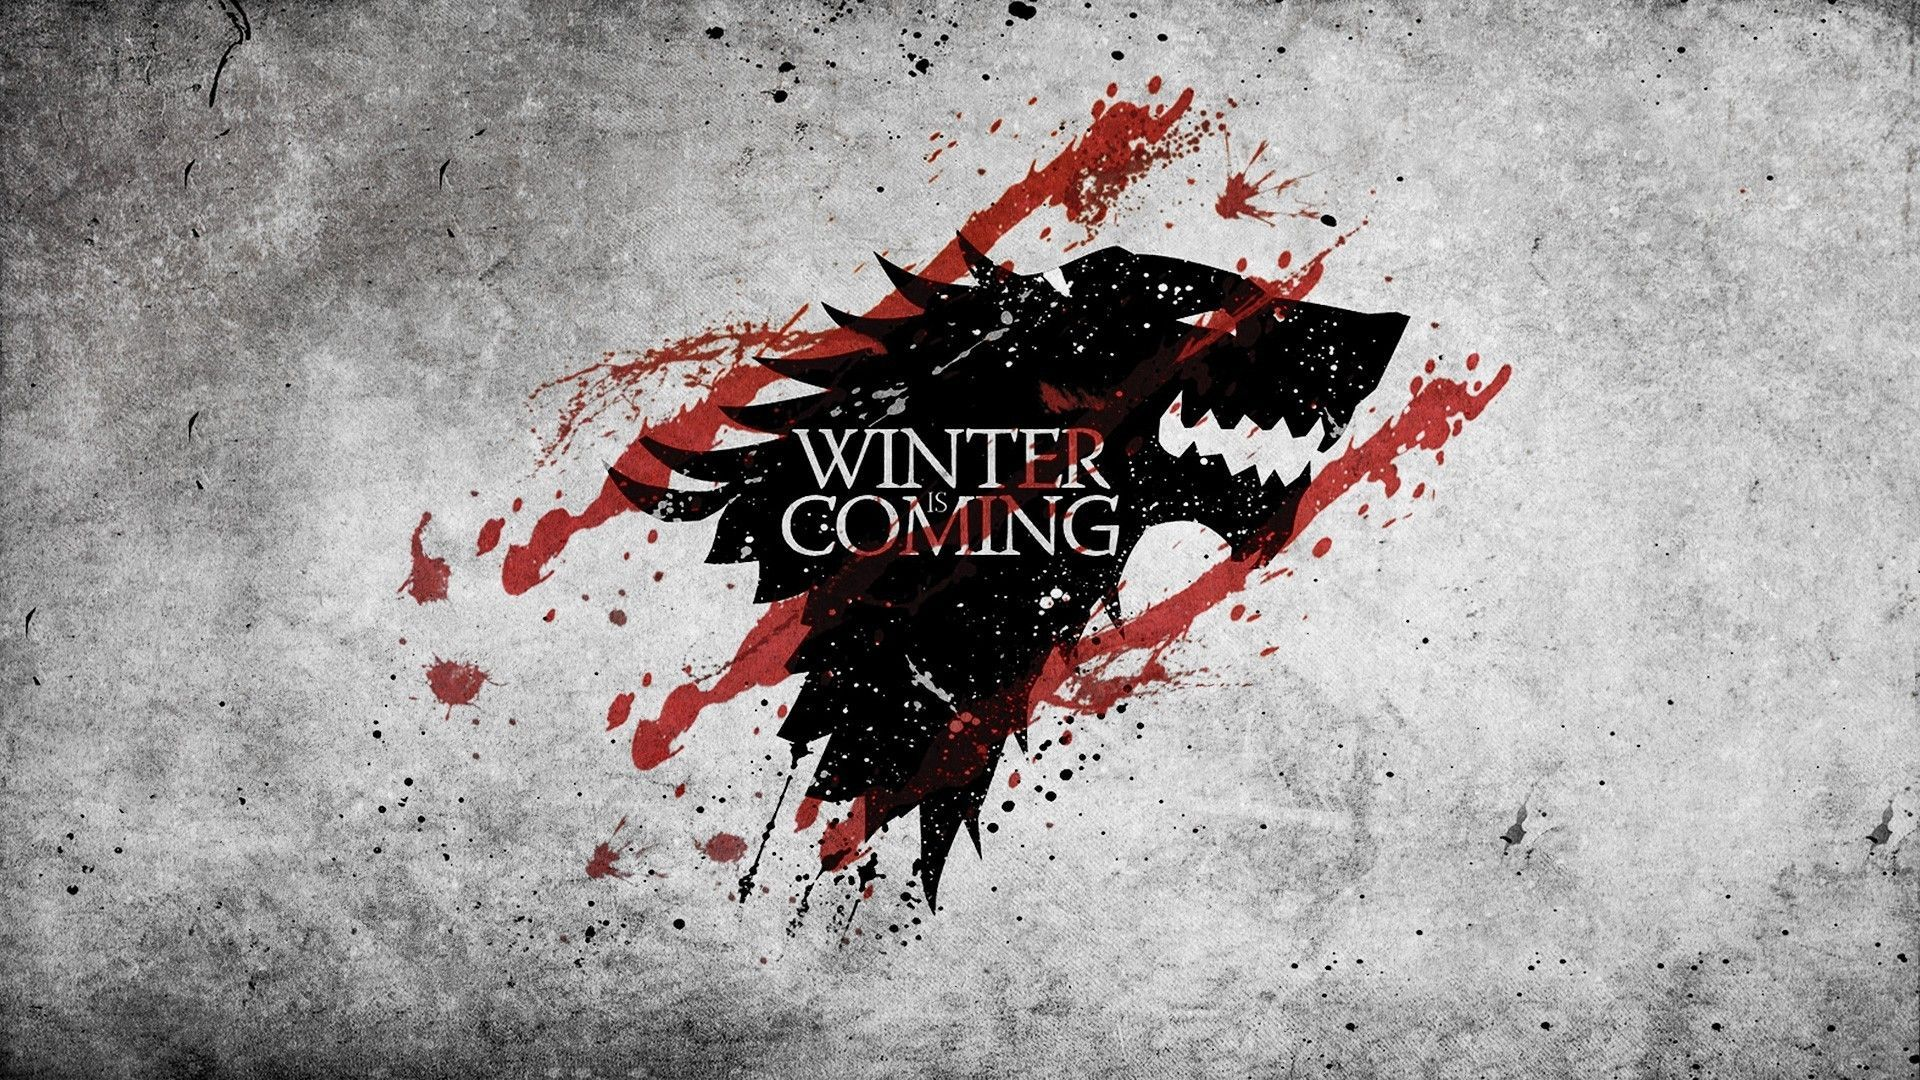 Winter Is Coming Game Of Thrones Wallpapers Top Free Winter Is